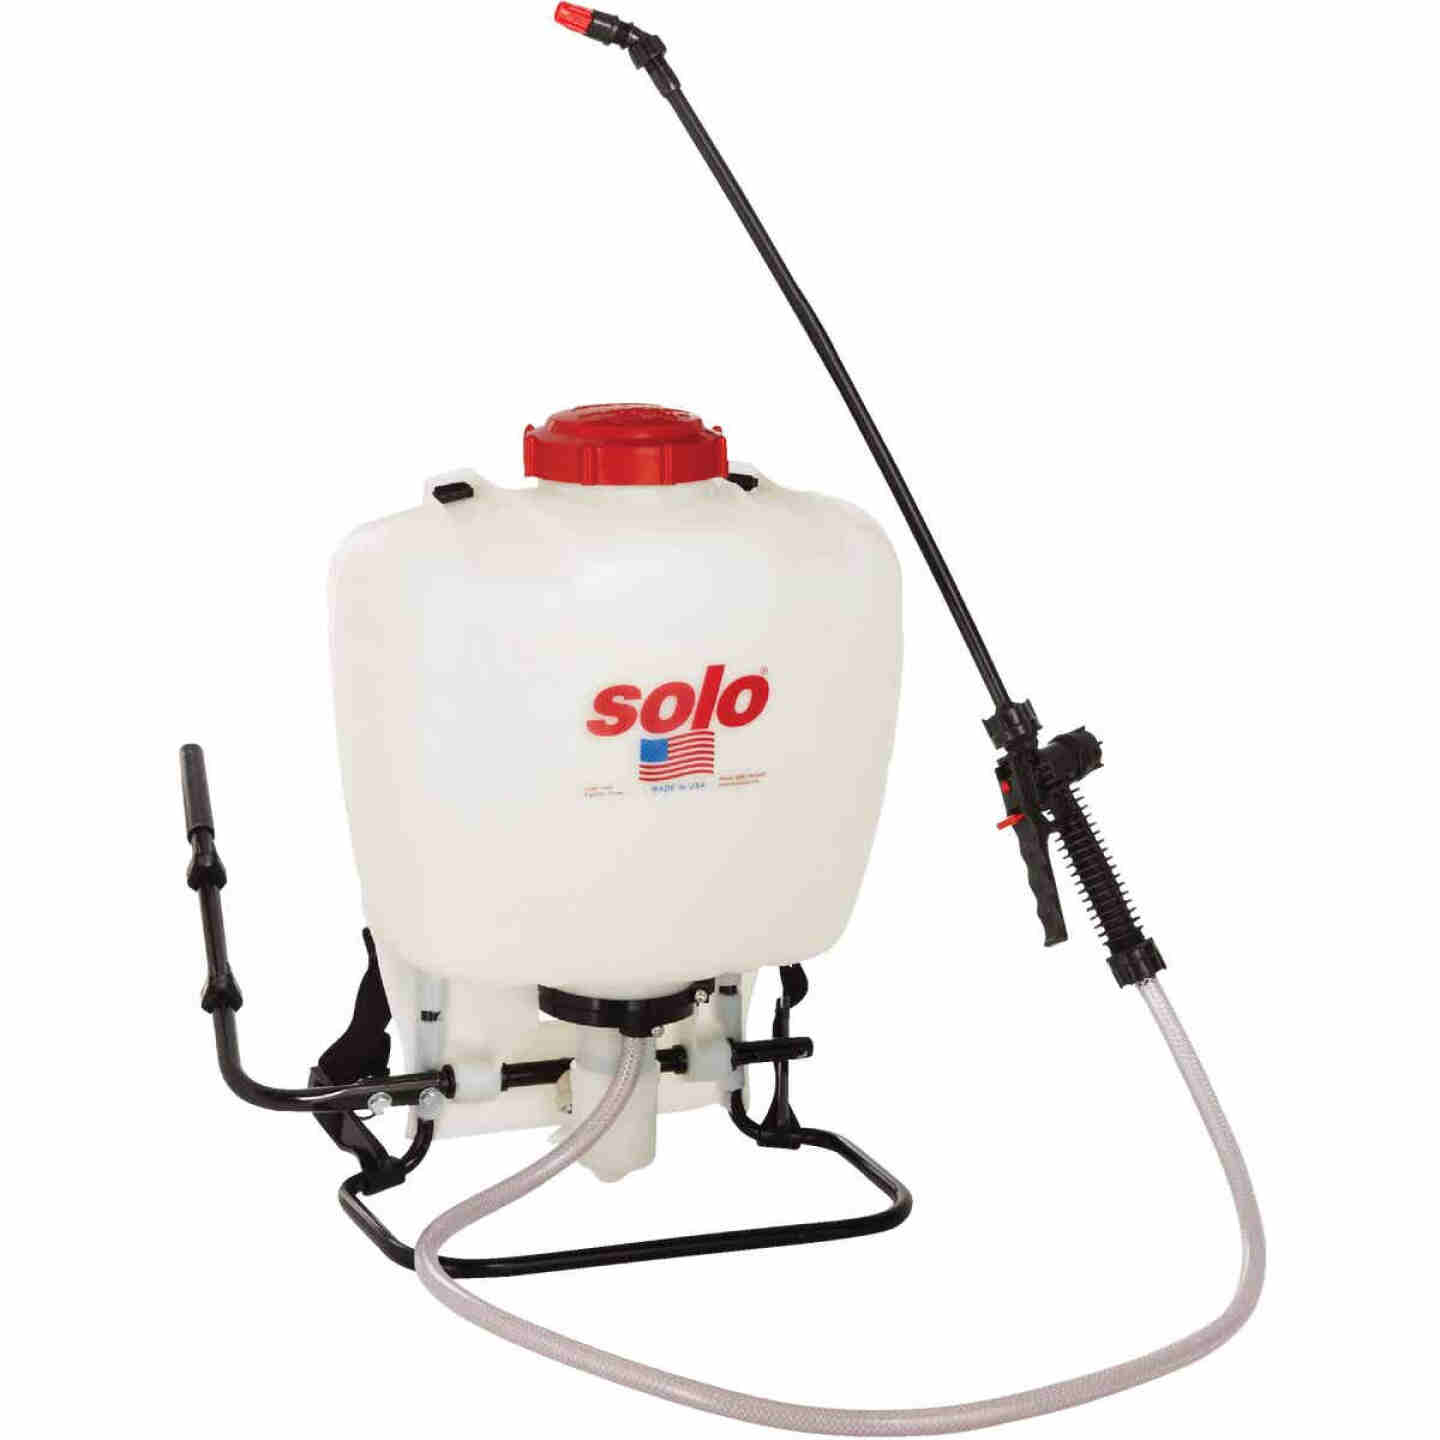 Solo 425 4 Gal. Backpack Sprayer Image 1